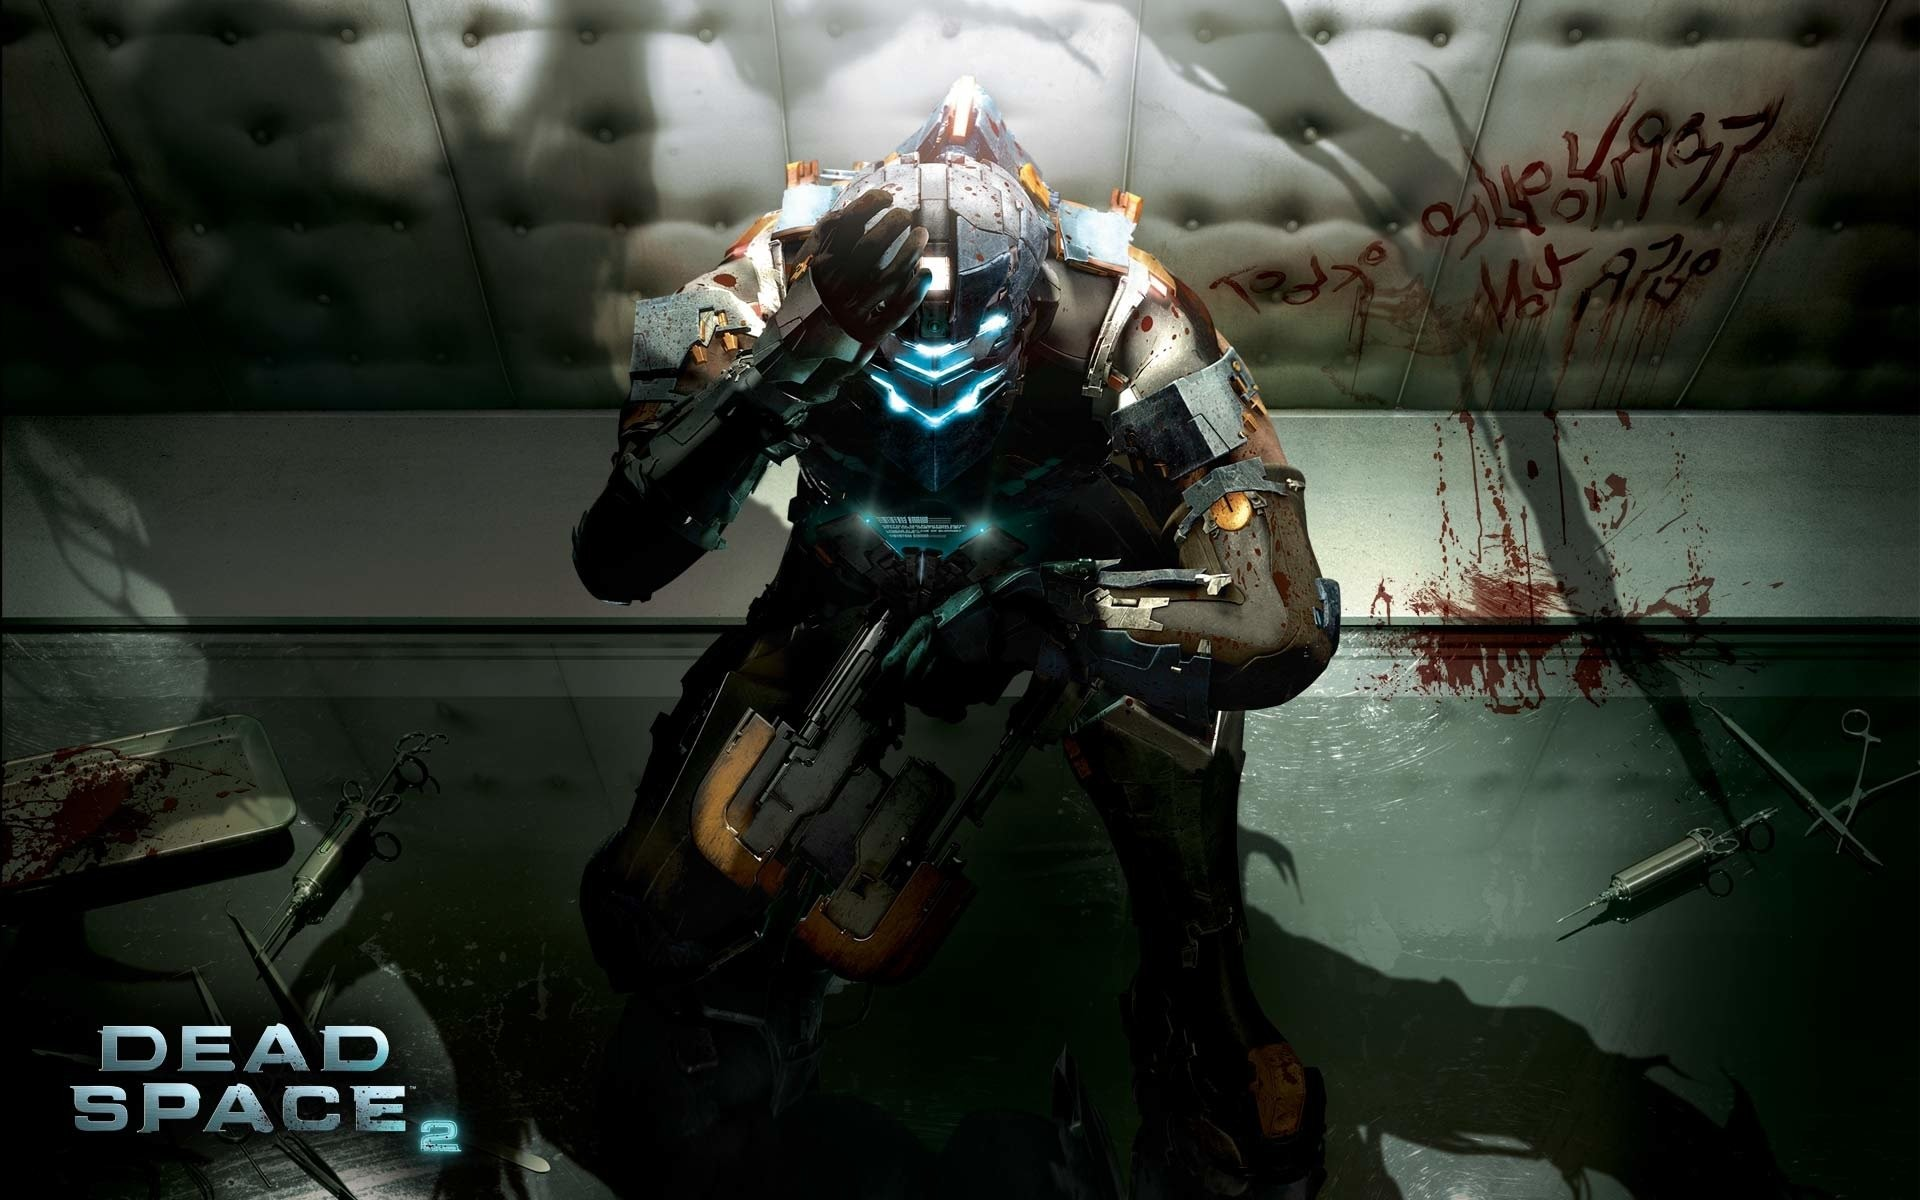 1920x1200 HD Wallpaper | Background Image ID:82231.  Video Game Dead Space 2